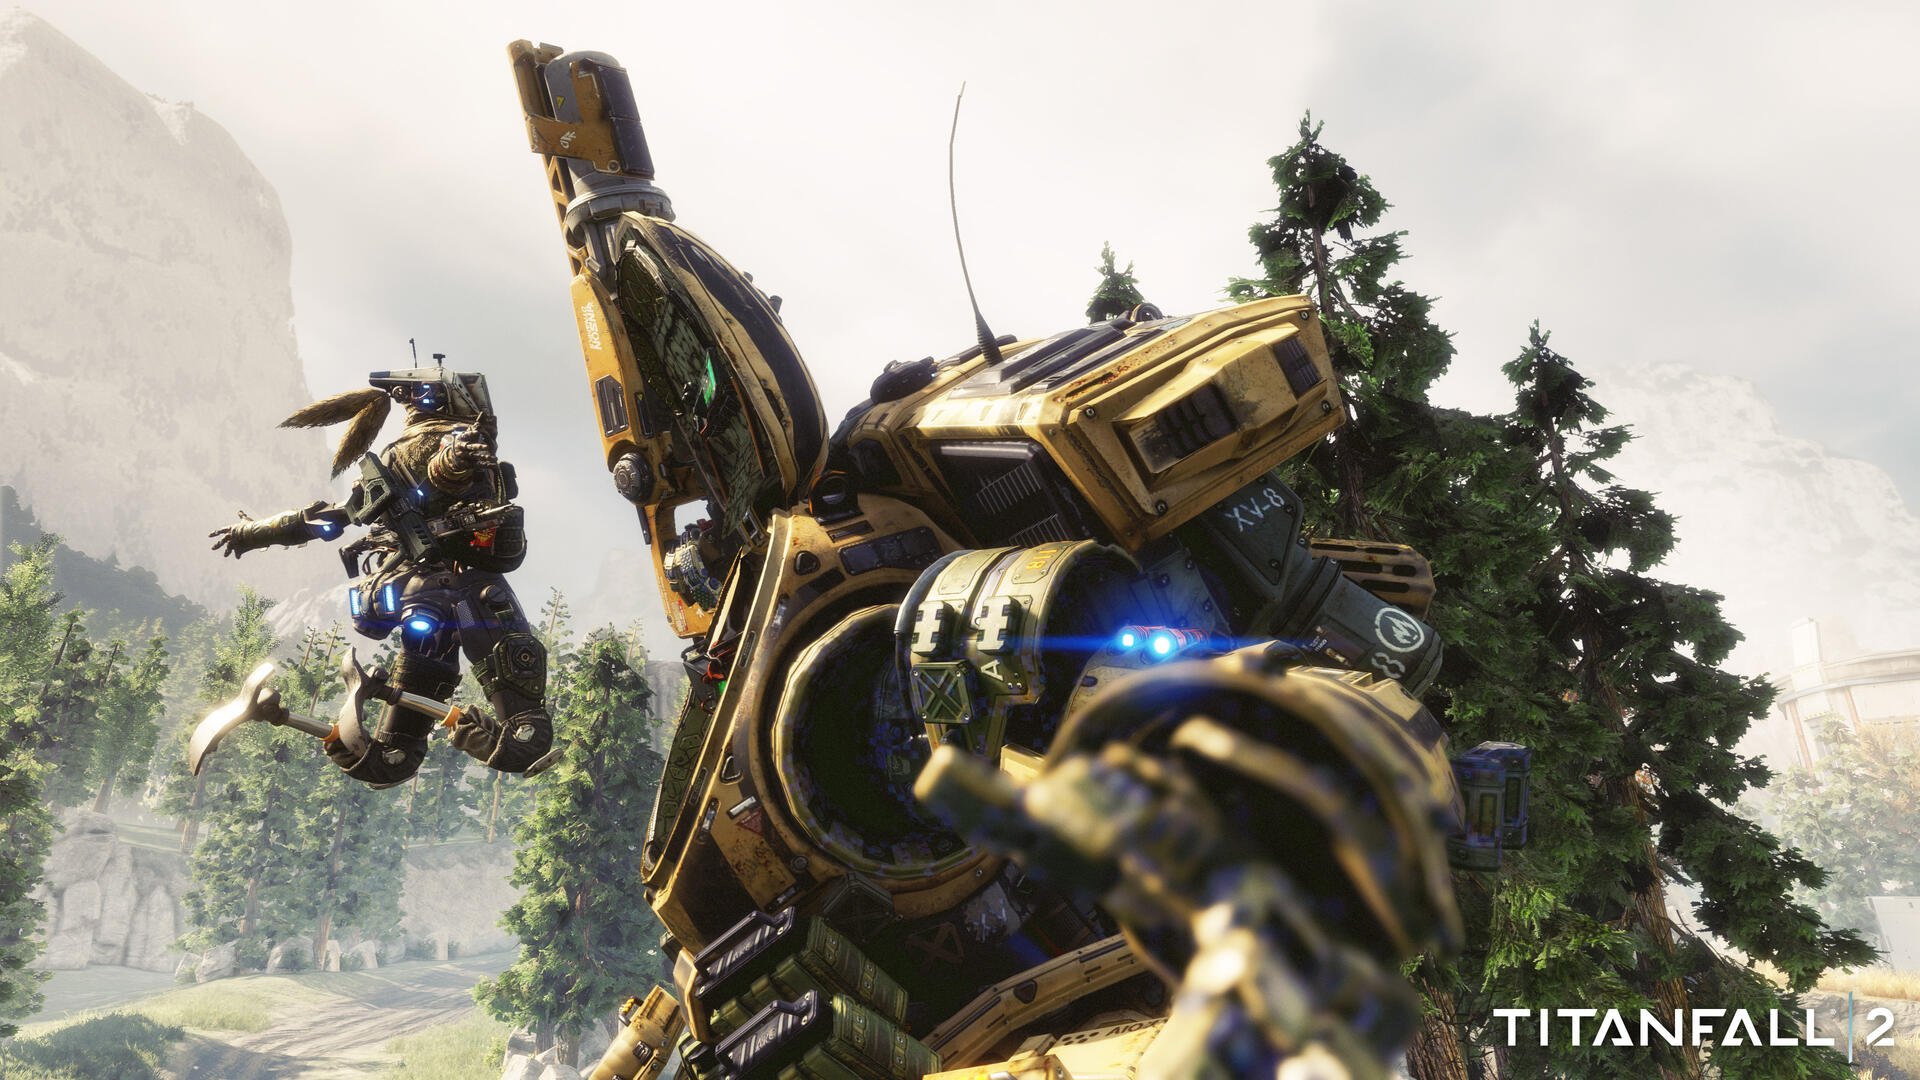 Titanfall 2's Single-Player Campaign Isn't Just Running and Gunning